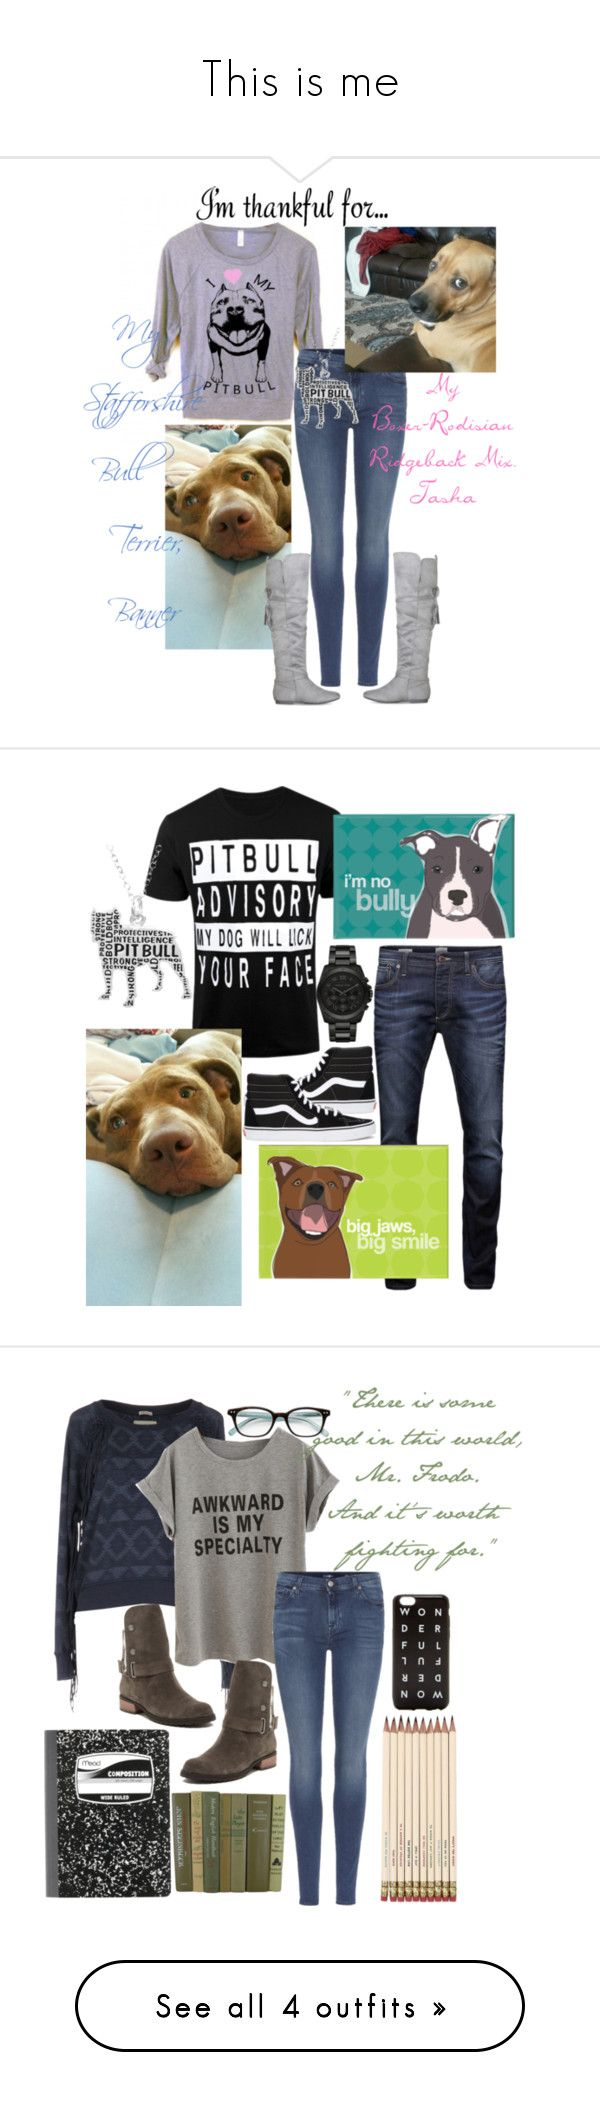 """""""This is me"""" by theonewhorunswithwolves ❤ liked on Polyvore featuring 7 For All Mankind, imthankfulfor, Jack & Jones, Vans, Michael Kors, Matt Bernson, Superdry, Kate Spade, J.Crew and WearAll"""